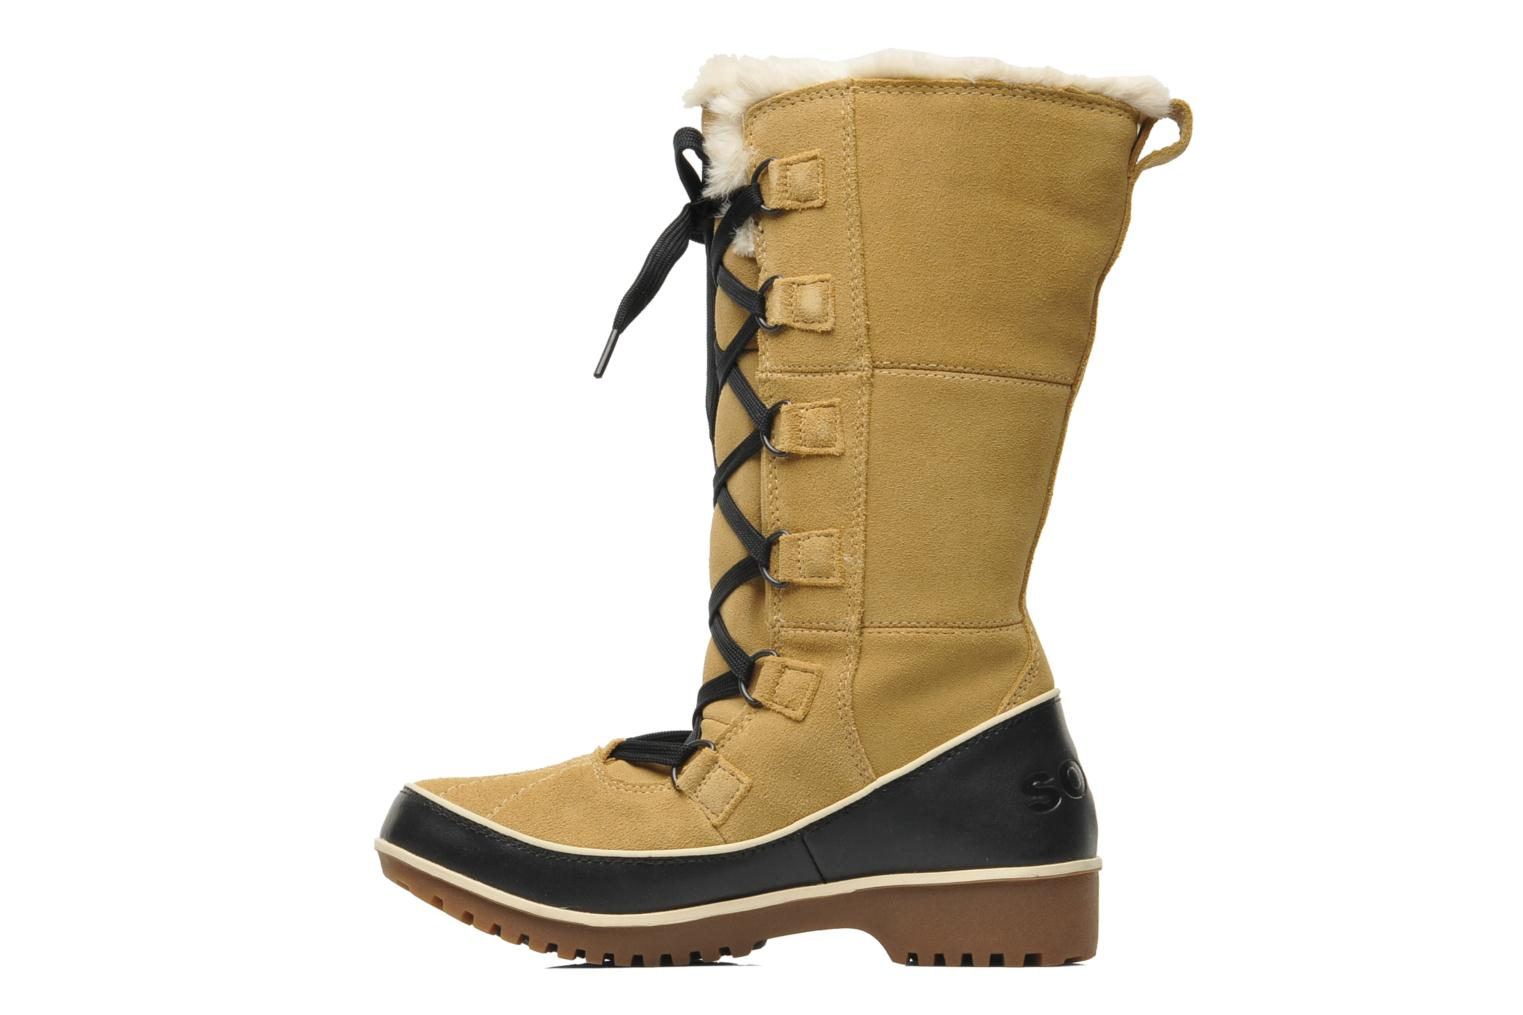 High Sorel Tivoli II Curry Tivoli High Sorel II Sorel Tivoli Curry High g75xwTqzOn